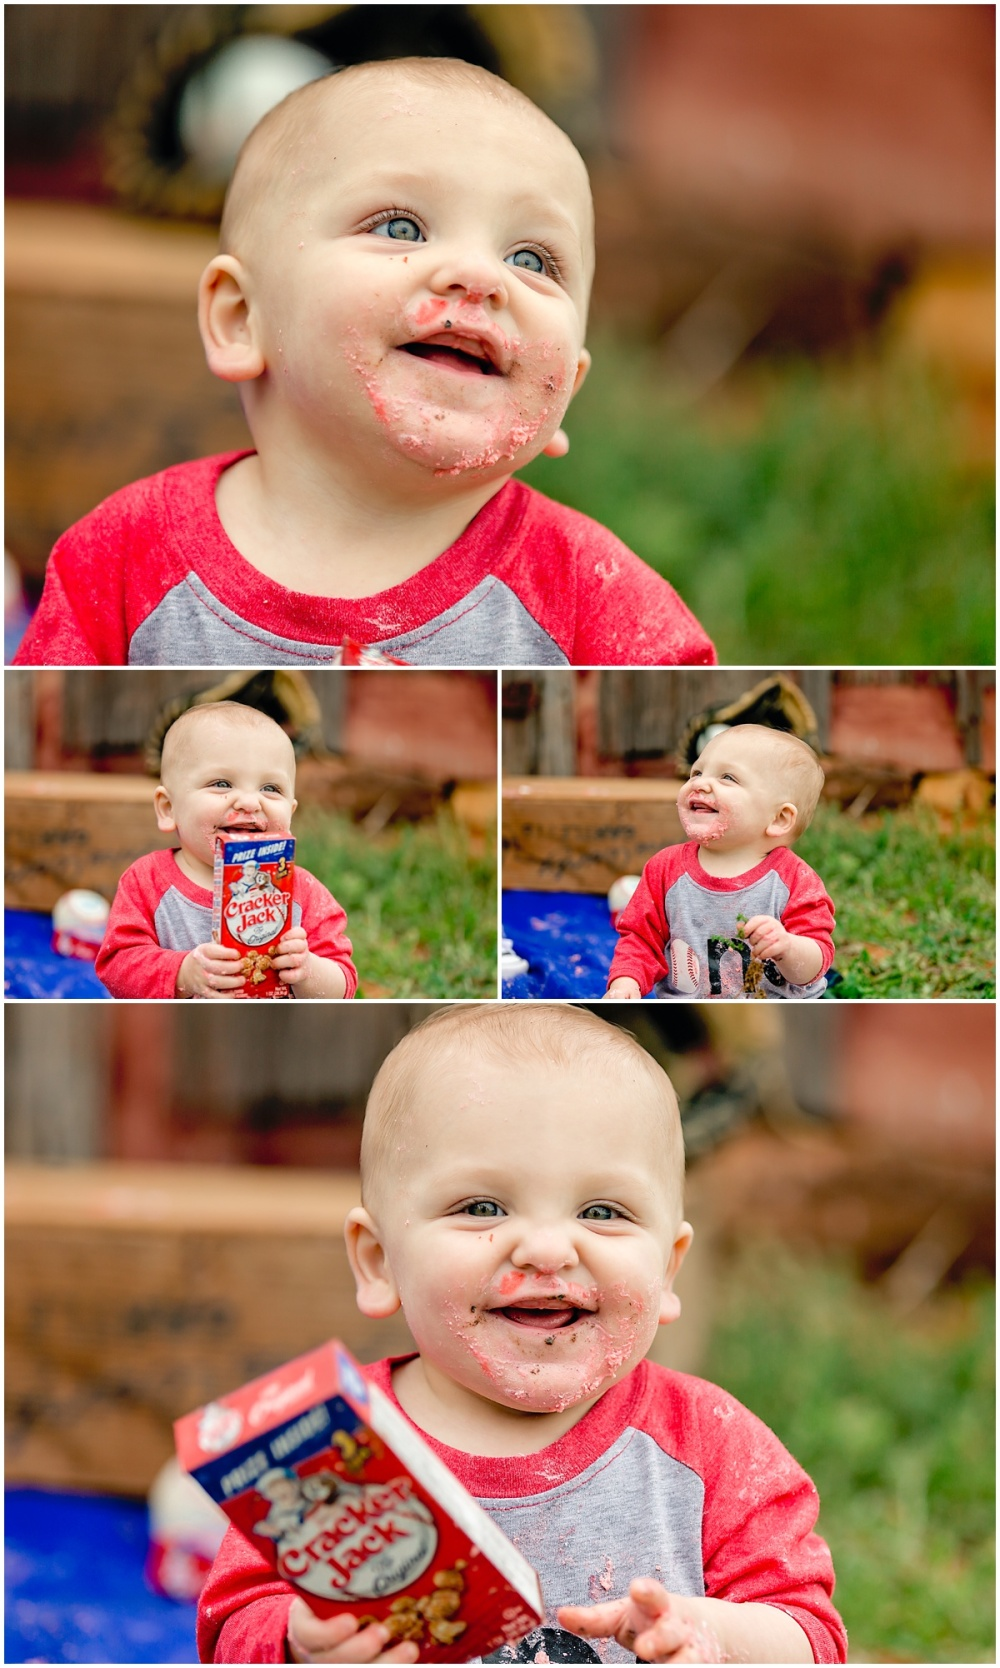 Cake-Smash-Baseball-Theme-First-Birthday-Carly-Barton-Photography_0005.jpg